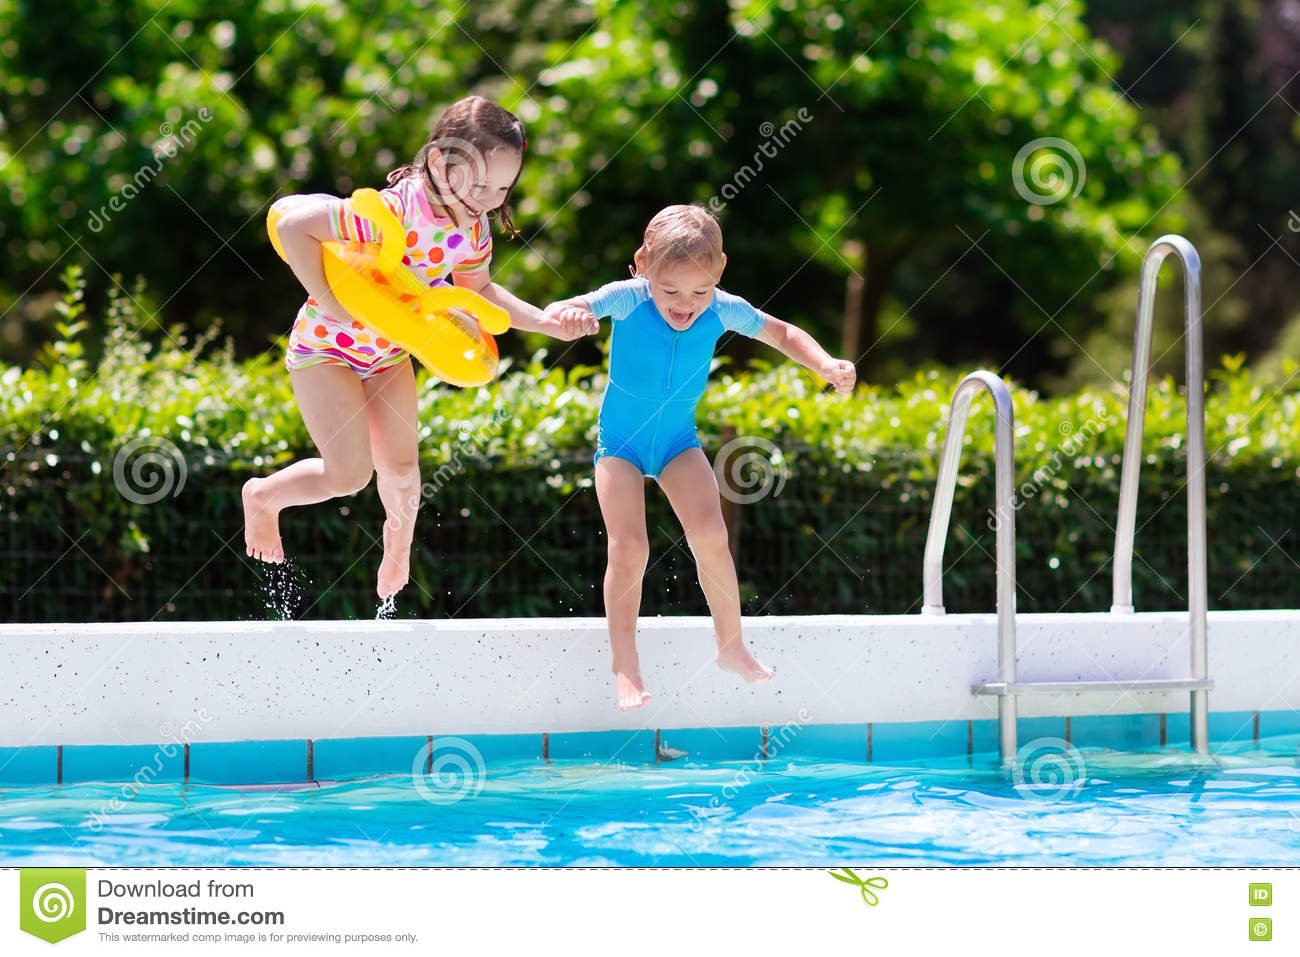 Kids Jumping Into Swimming Pool Stock Photo Image Of Child Beach 74823806